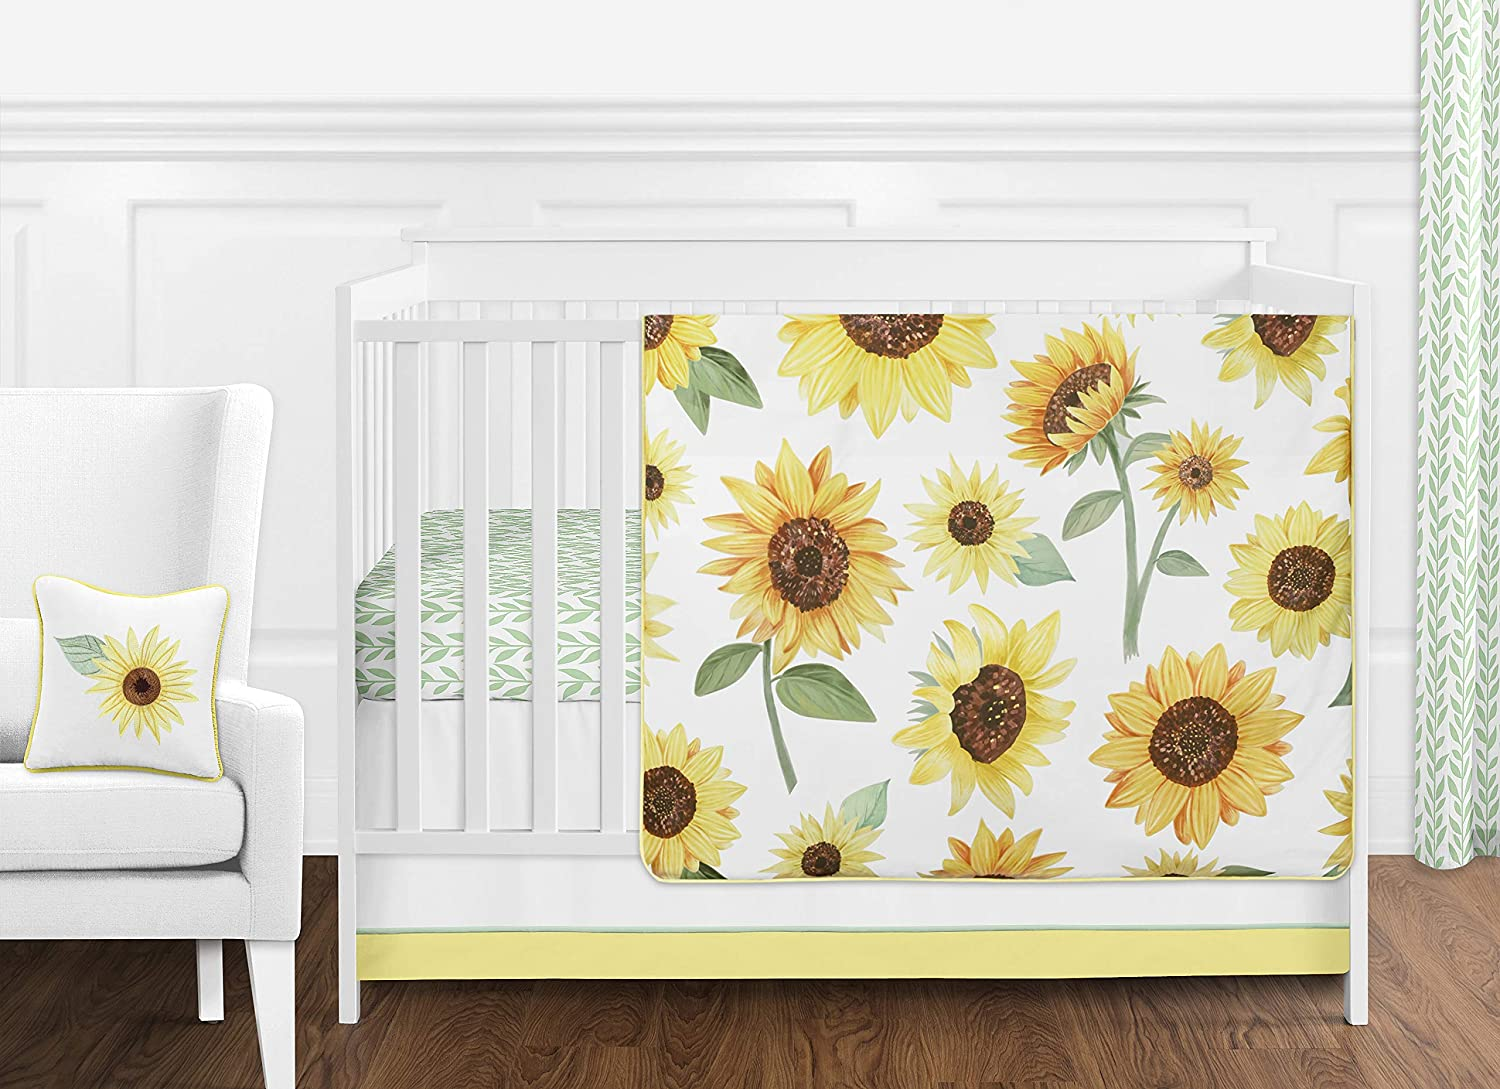 Sweet Jojo New product! New type Baltimore Mall Designs Yellow Green White Boho Floral and Sunflower